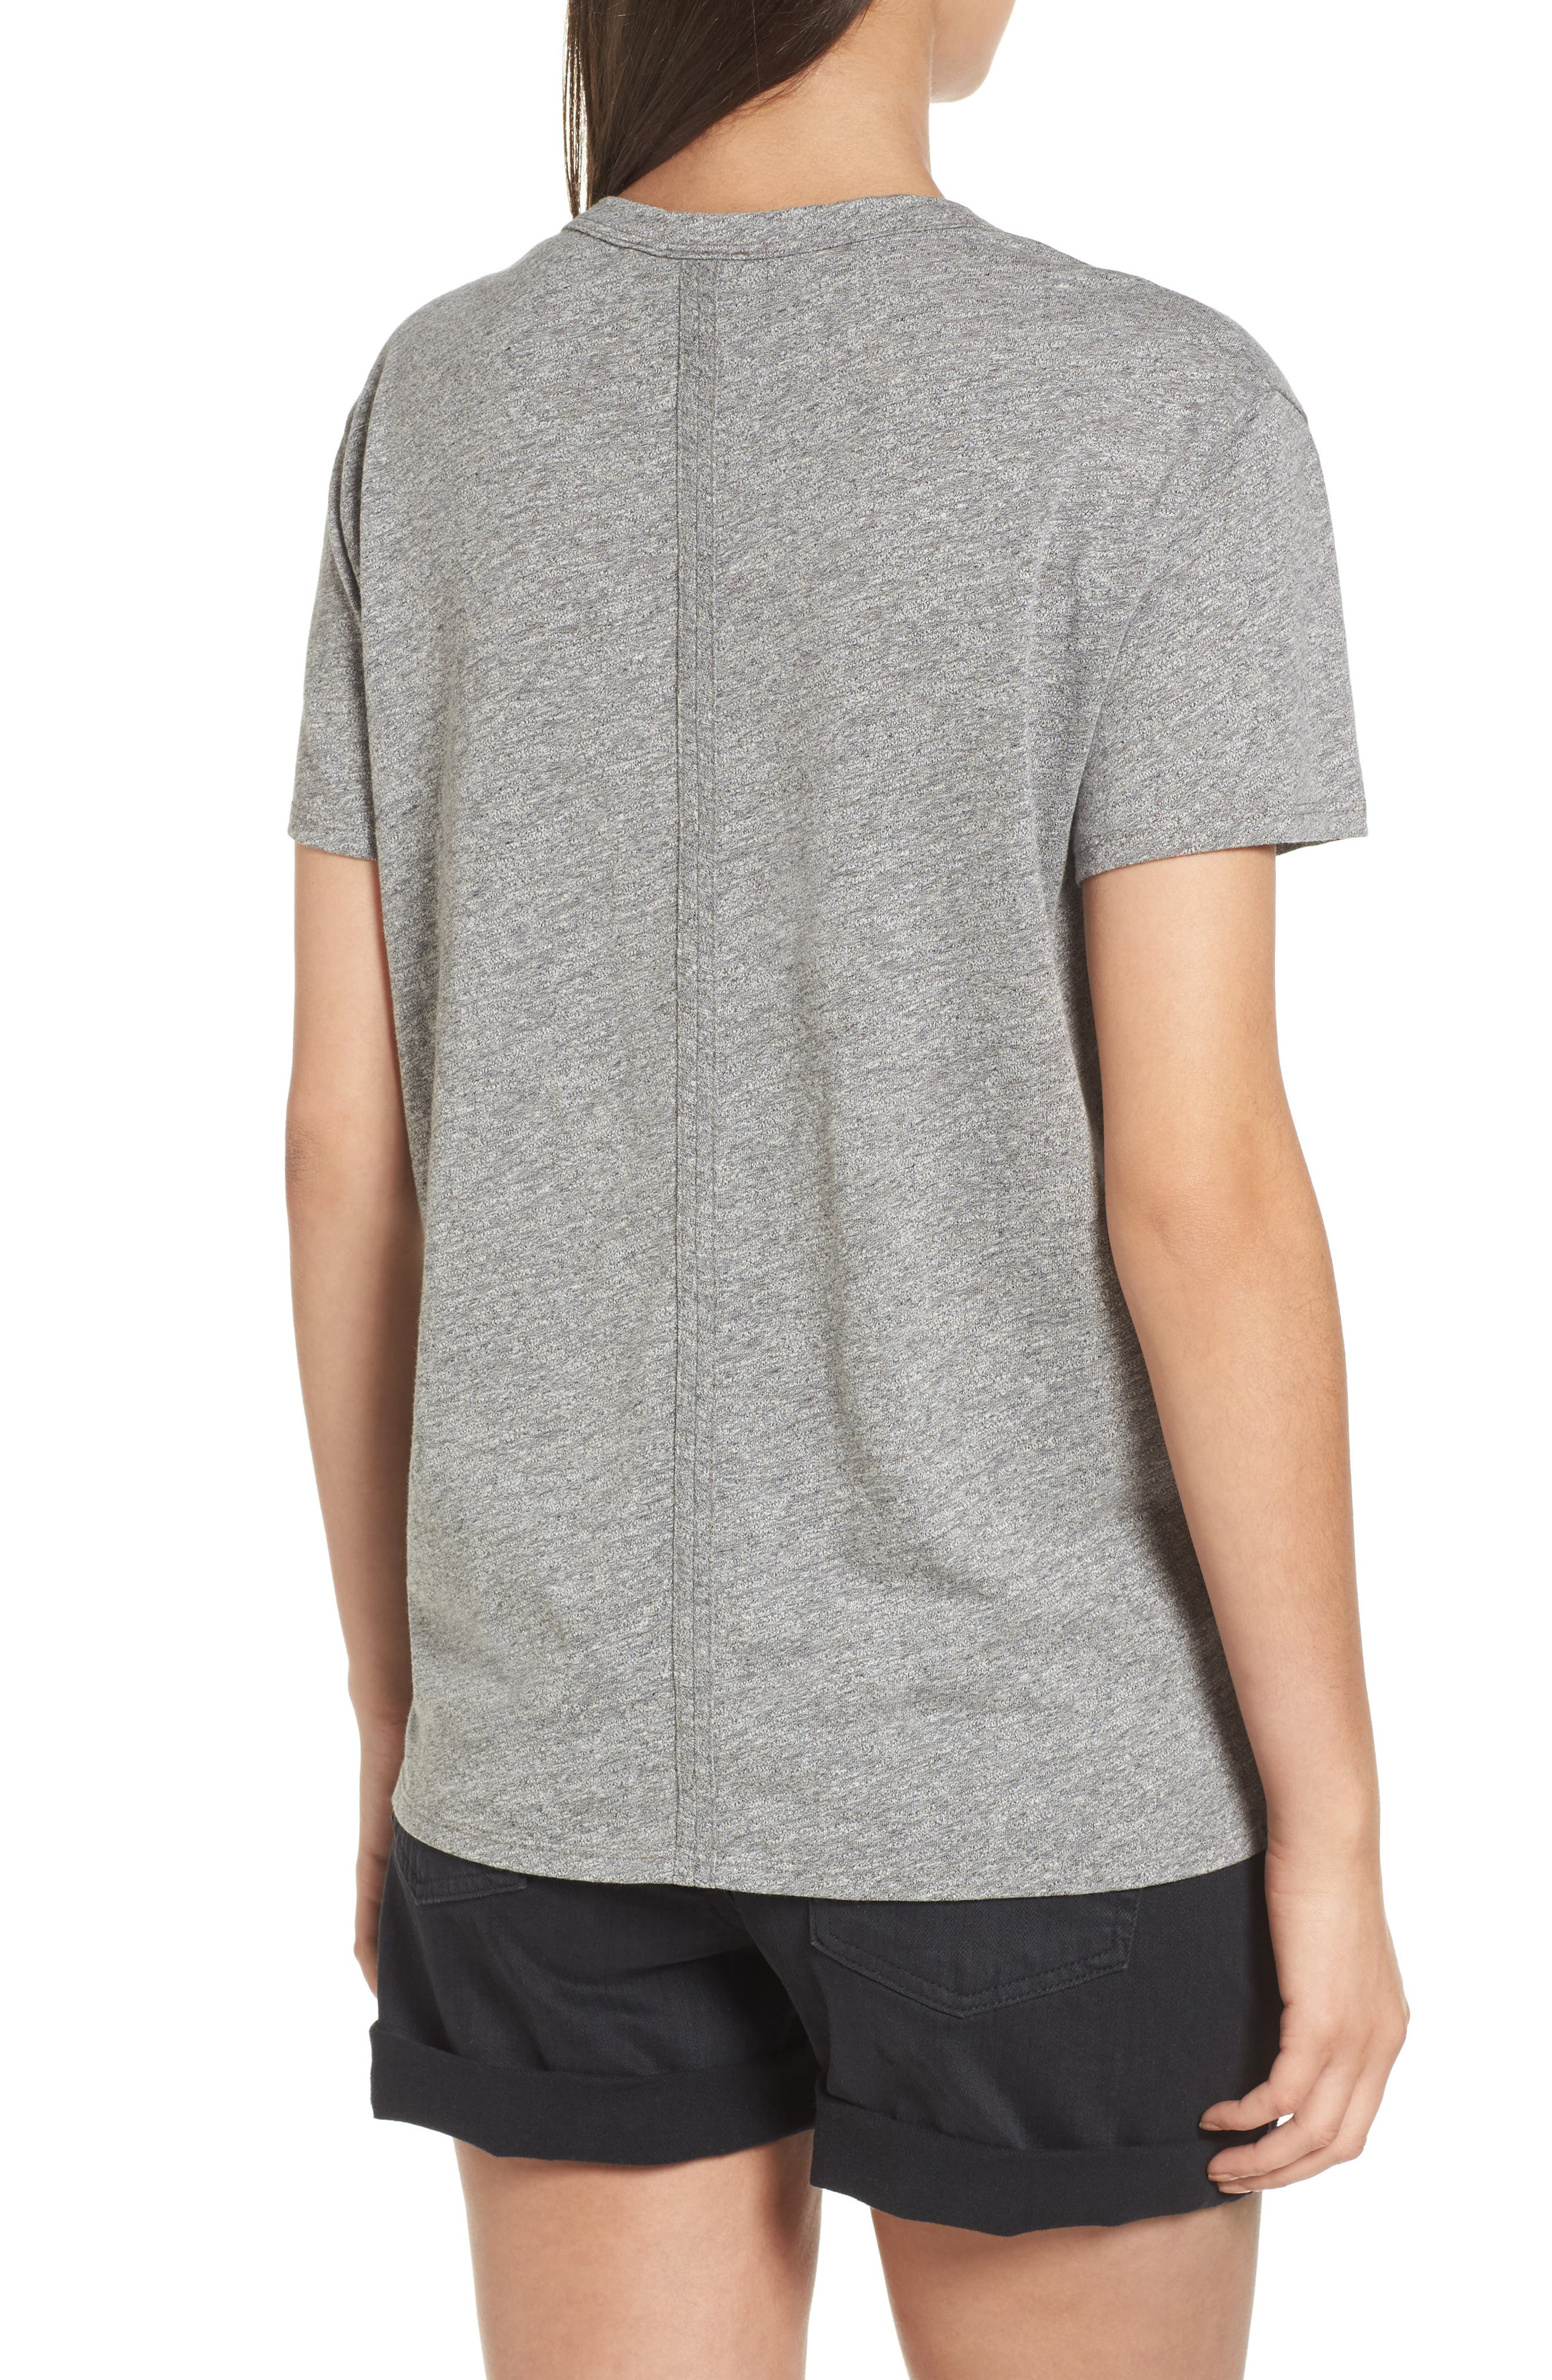 Henson Tee,                             Alternate thumbnail 2, color,                             Speckled Heather Grey